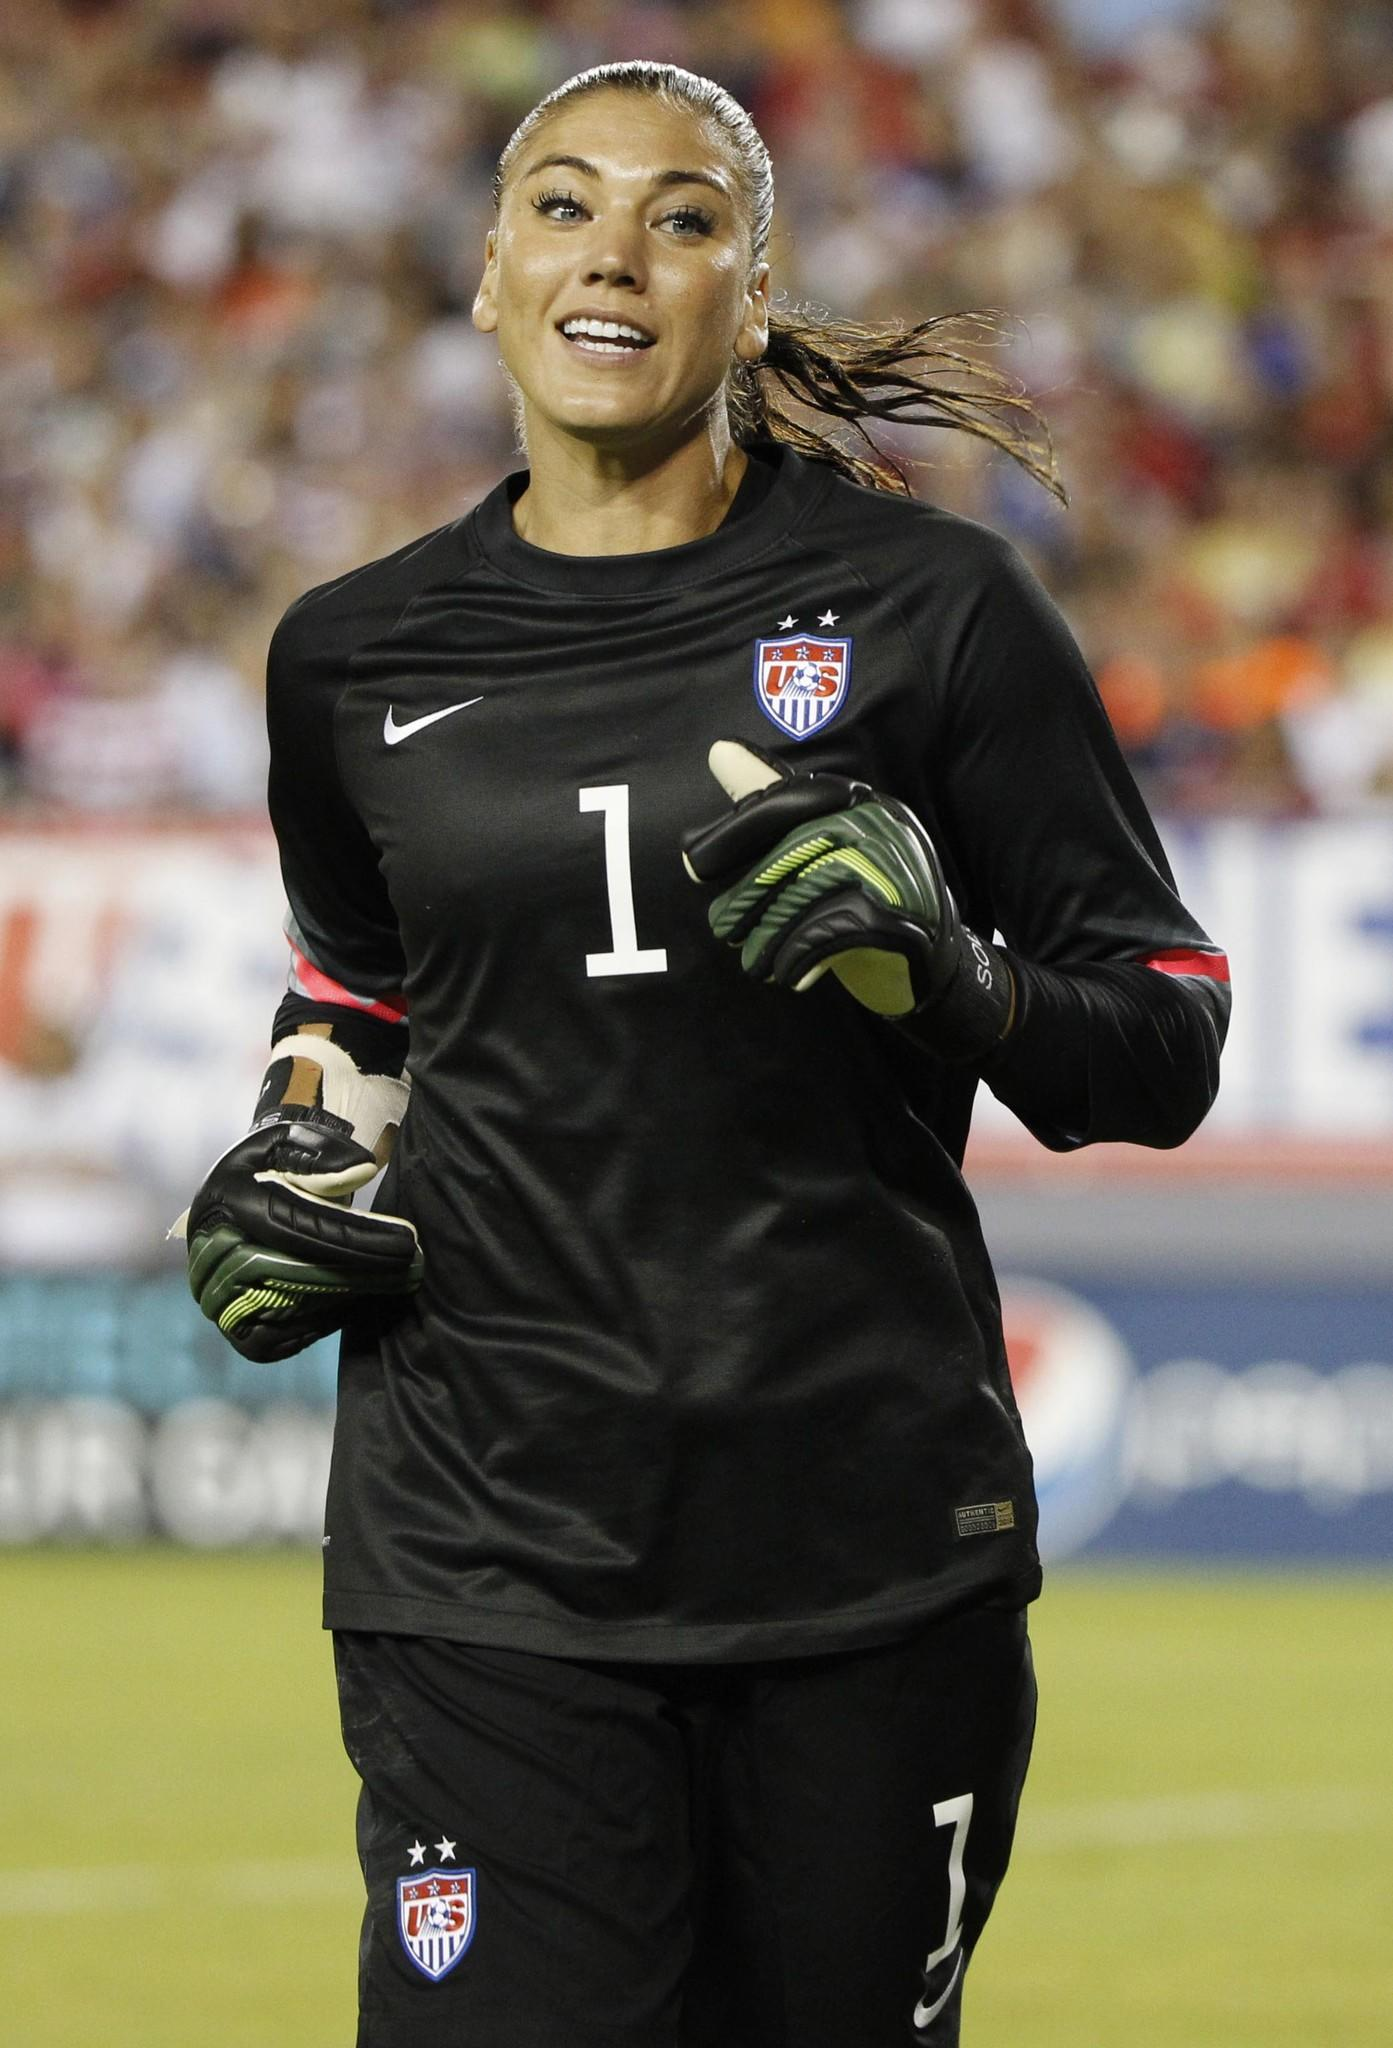 United States goalkeeper Hope Solo (1) reacts against France during the second half in a women's soccer friendly at Raymond James Stadium. United States defeated France 1-0.